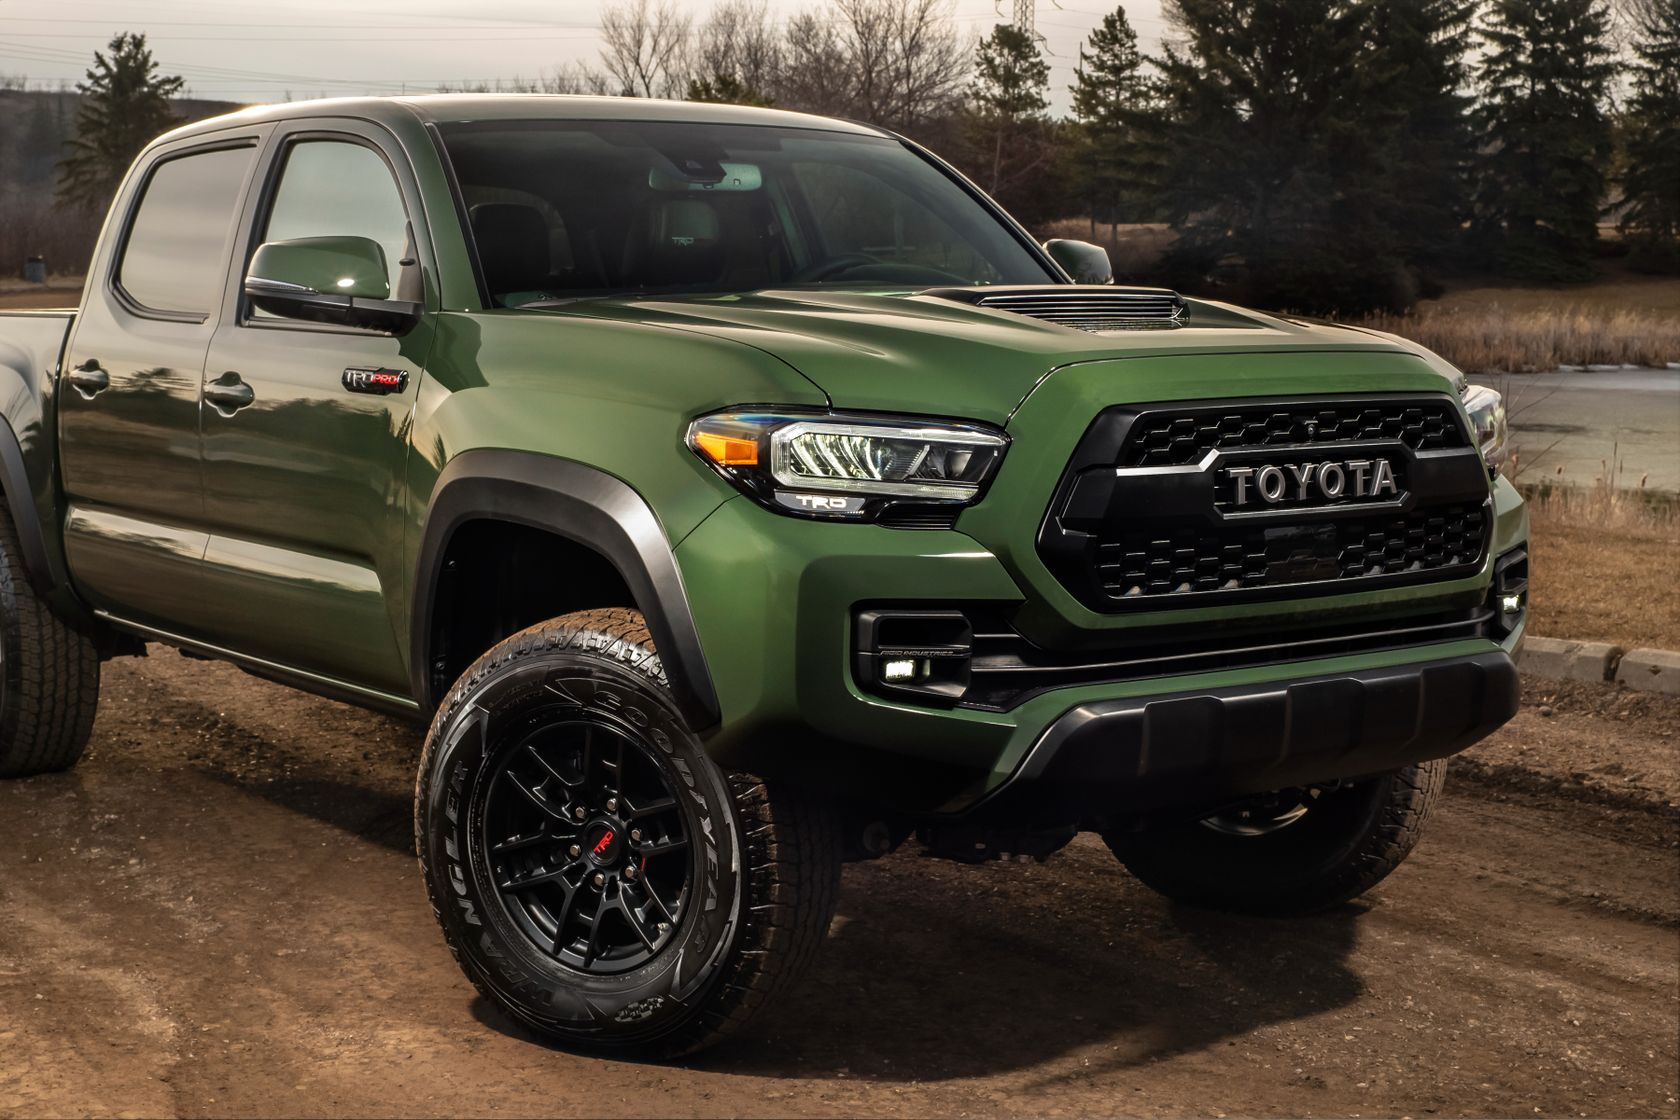 2021 Toyota Tacoma Diesel Performance and New Engine